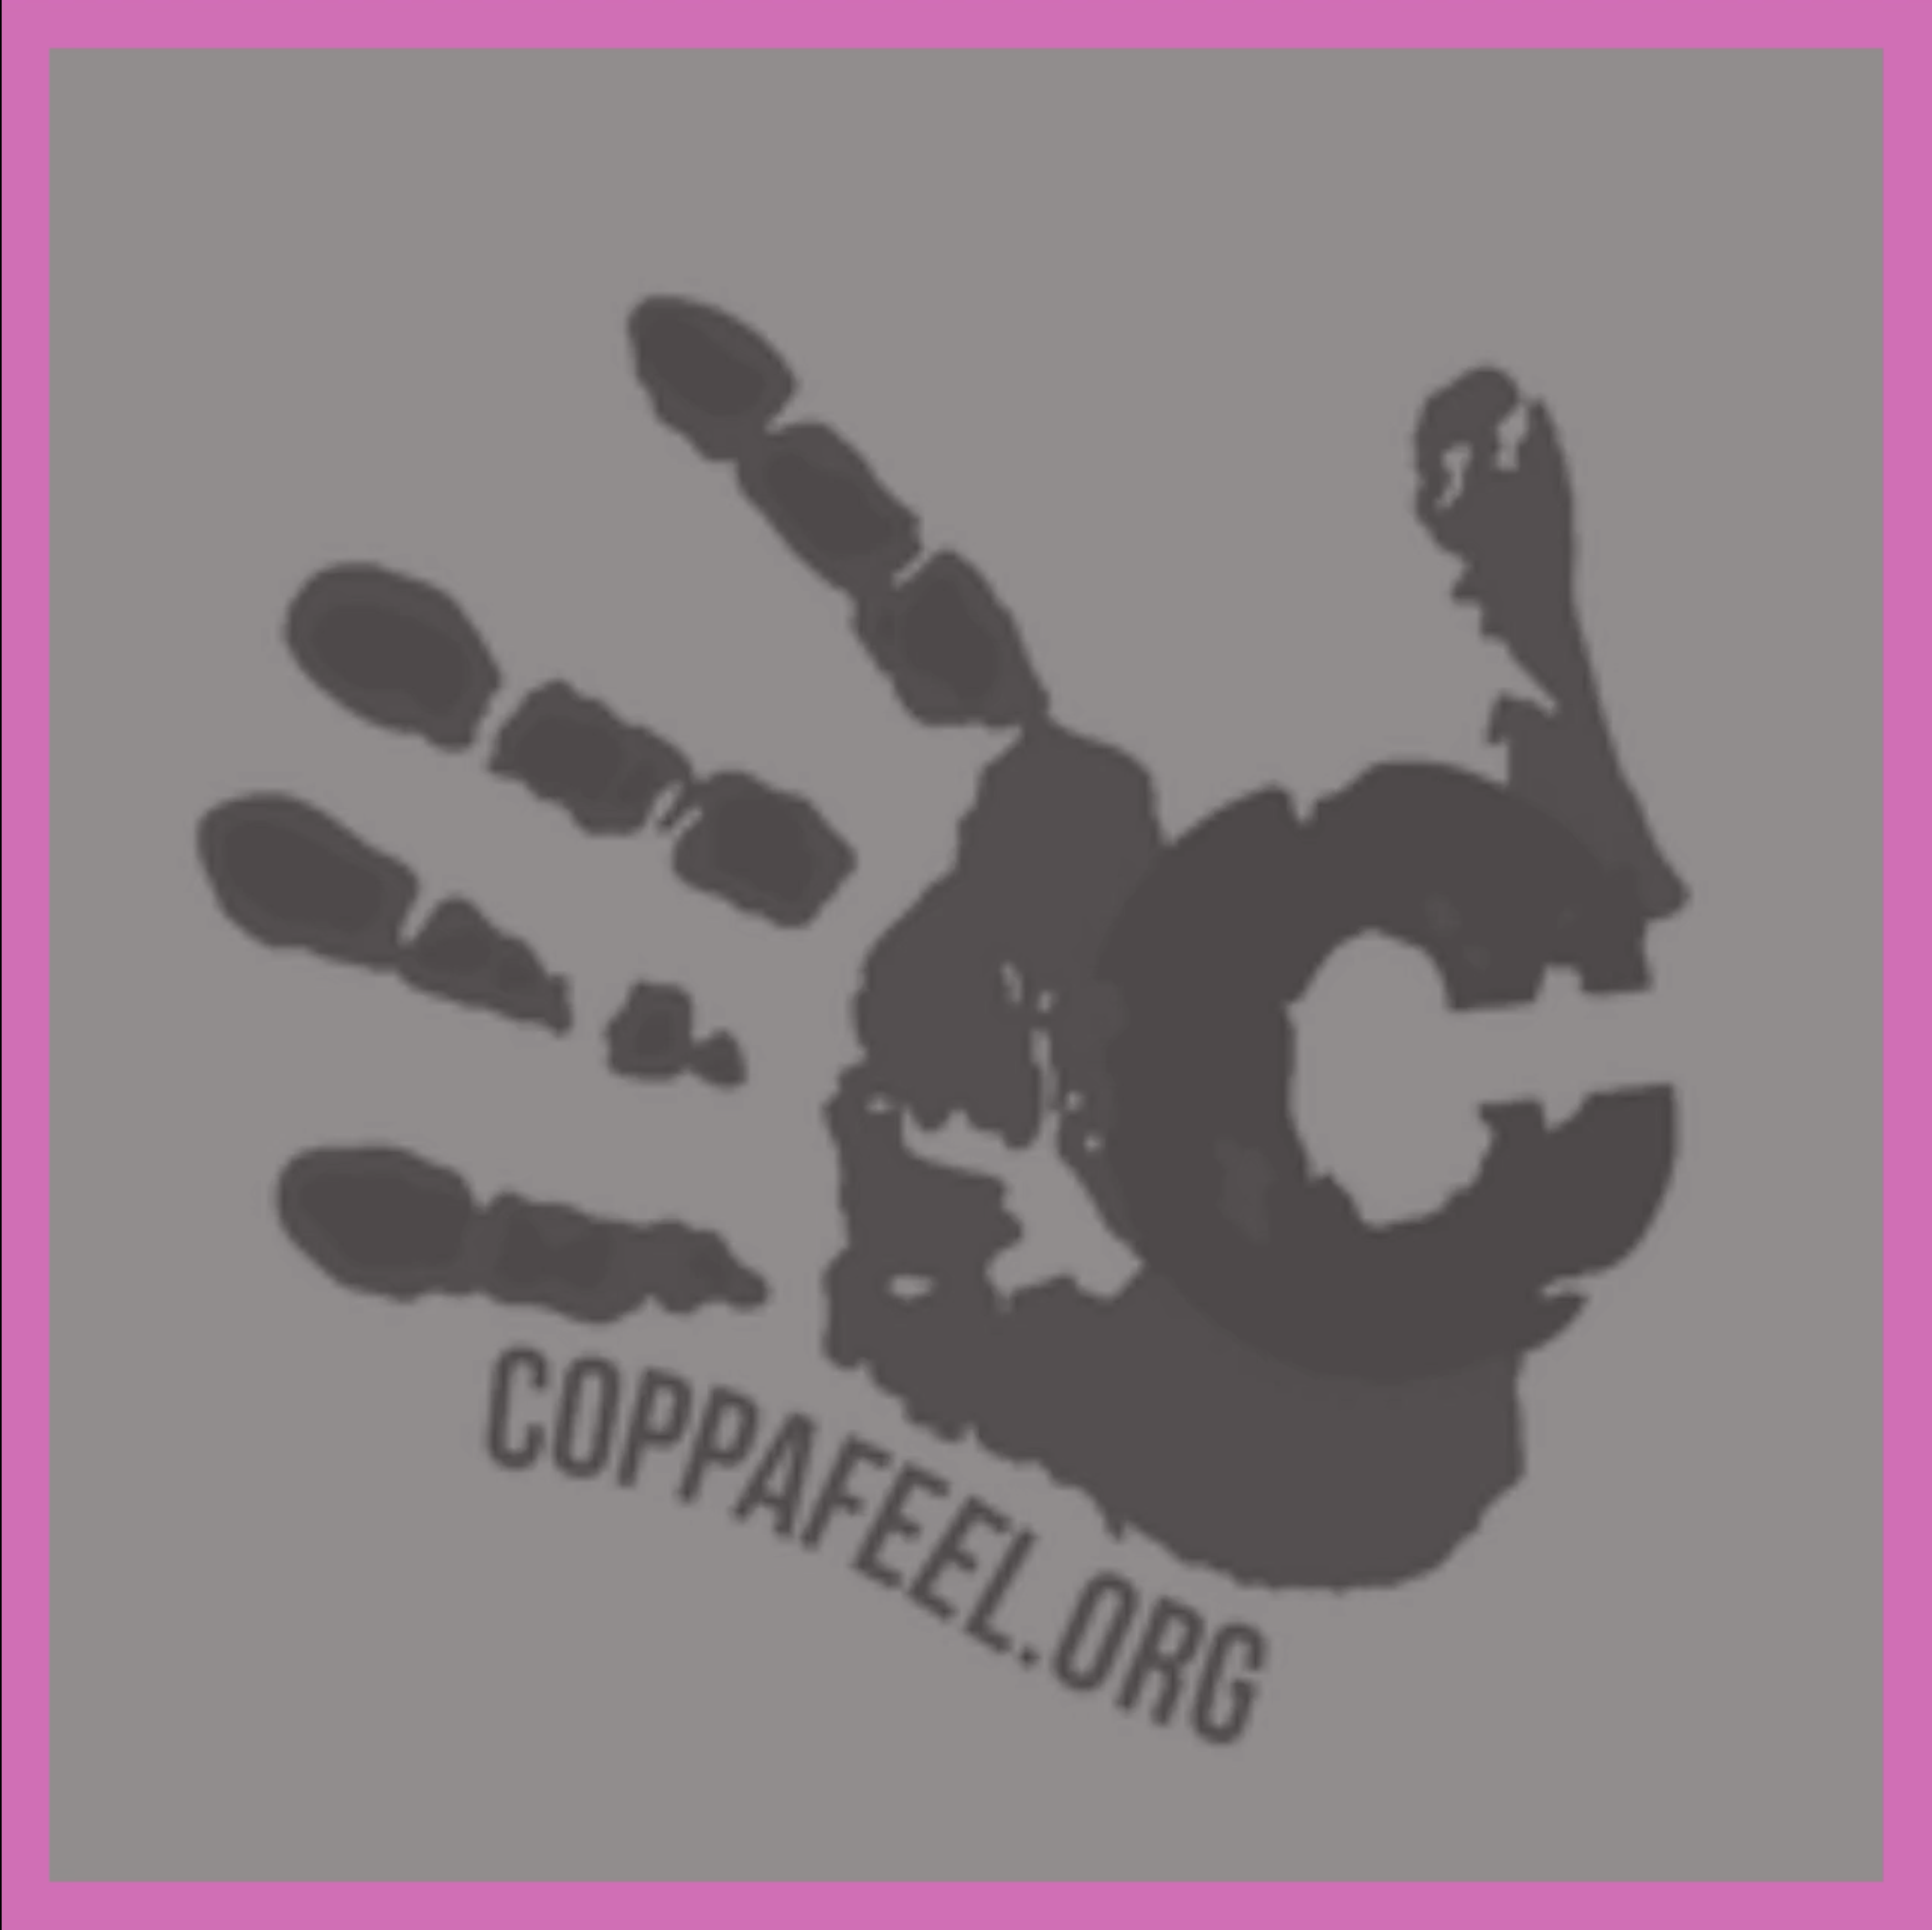 An image of the Coppafeel logo